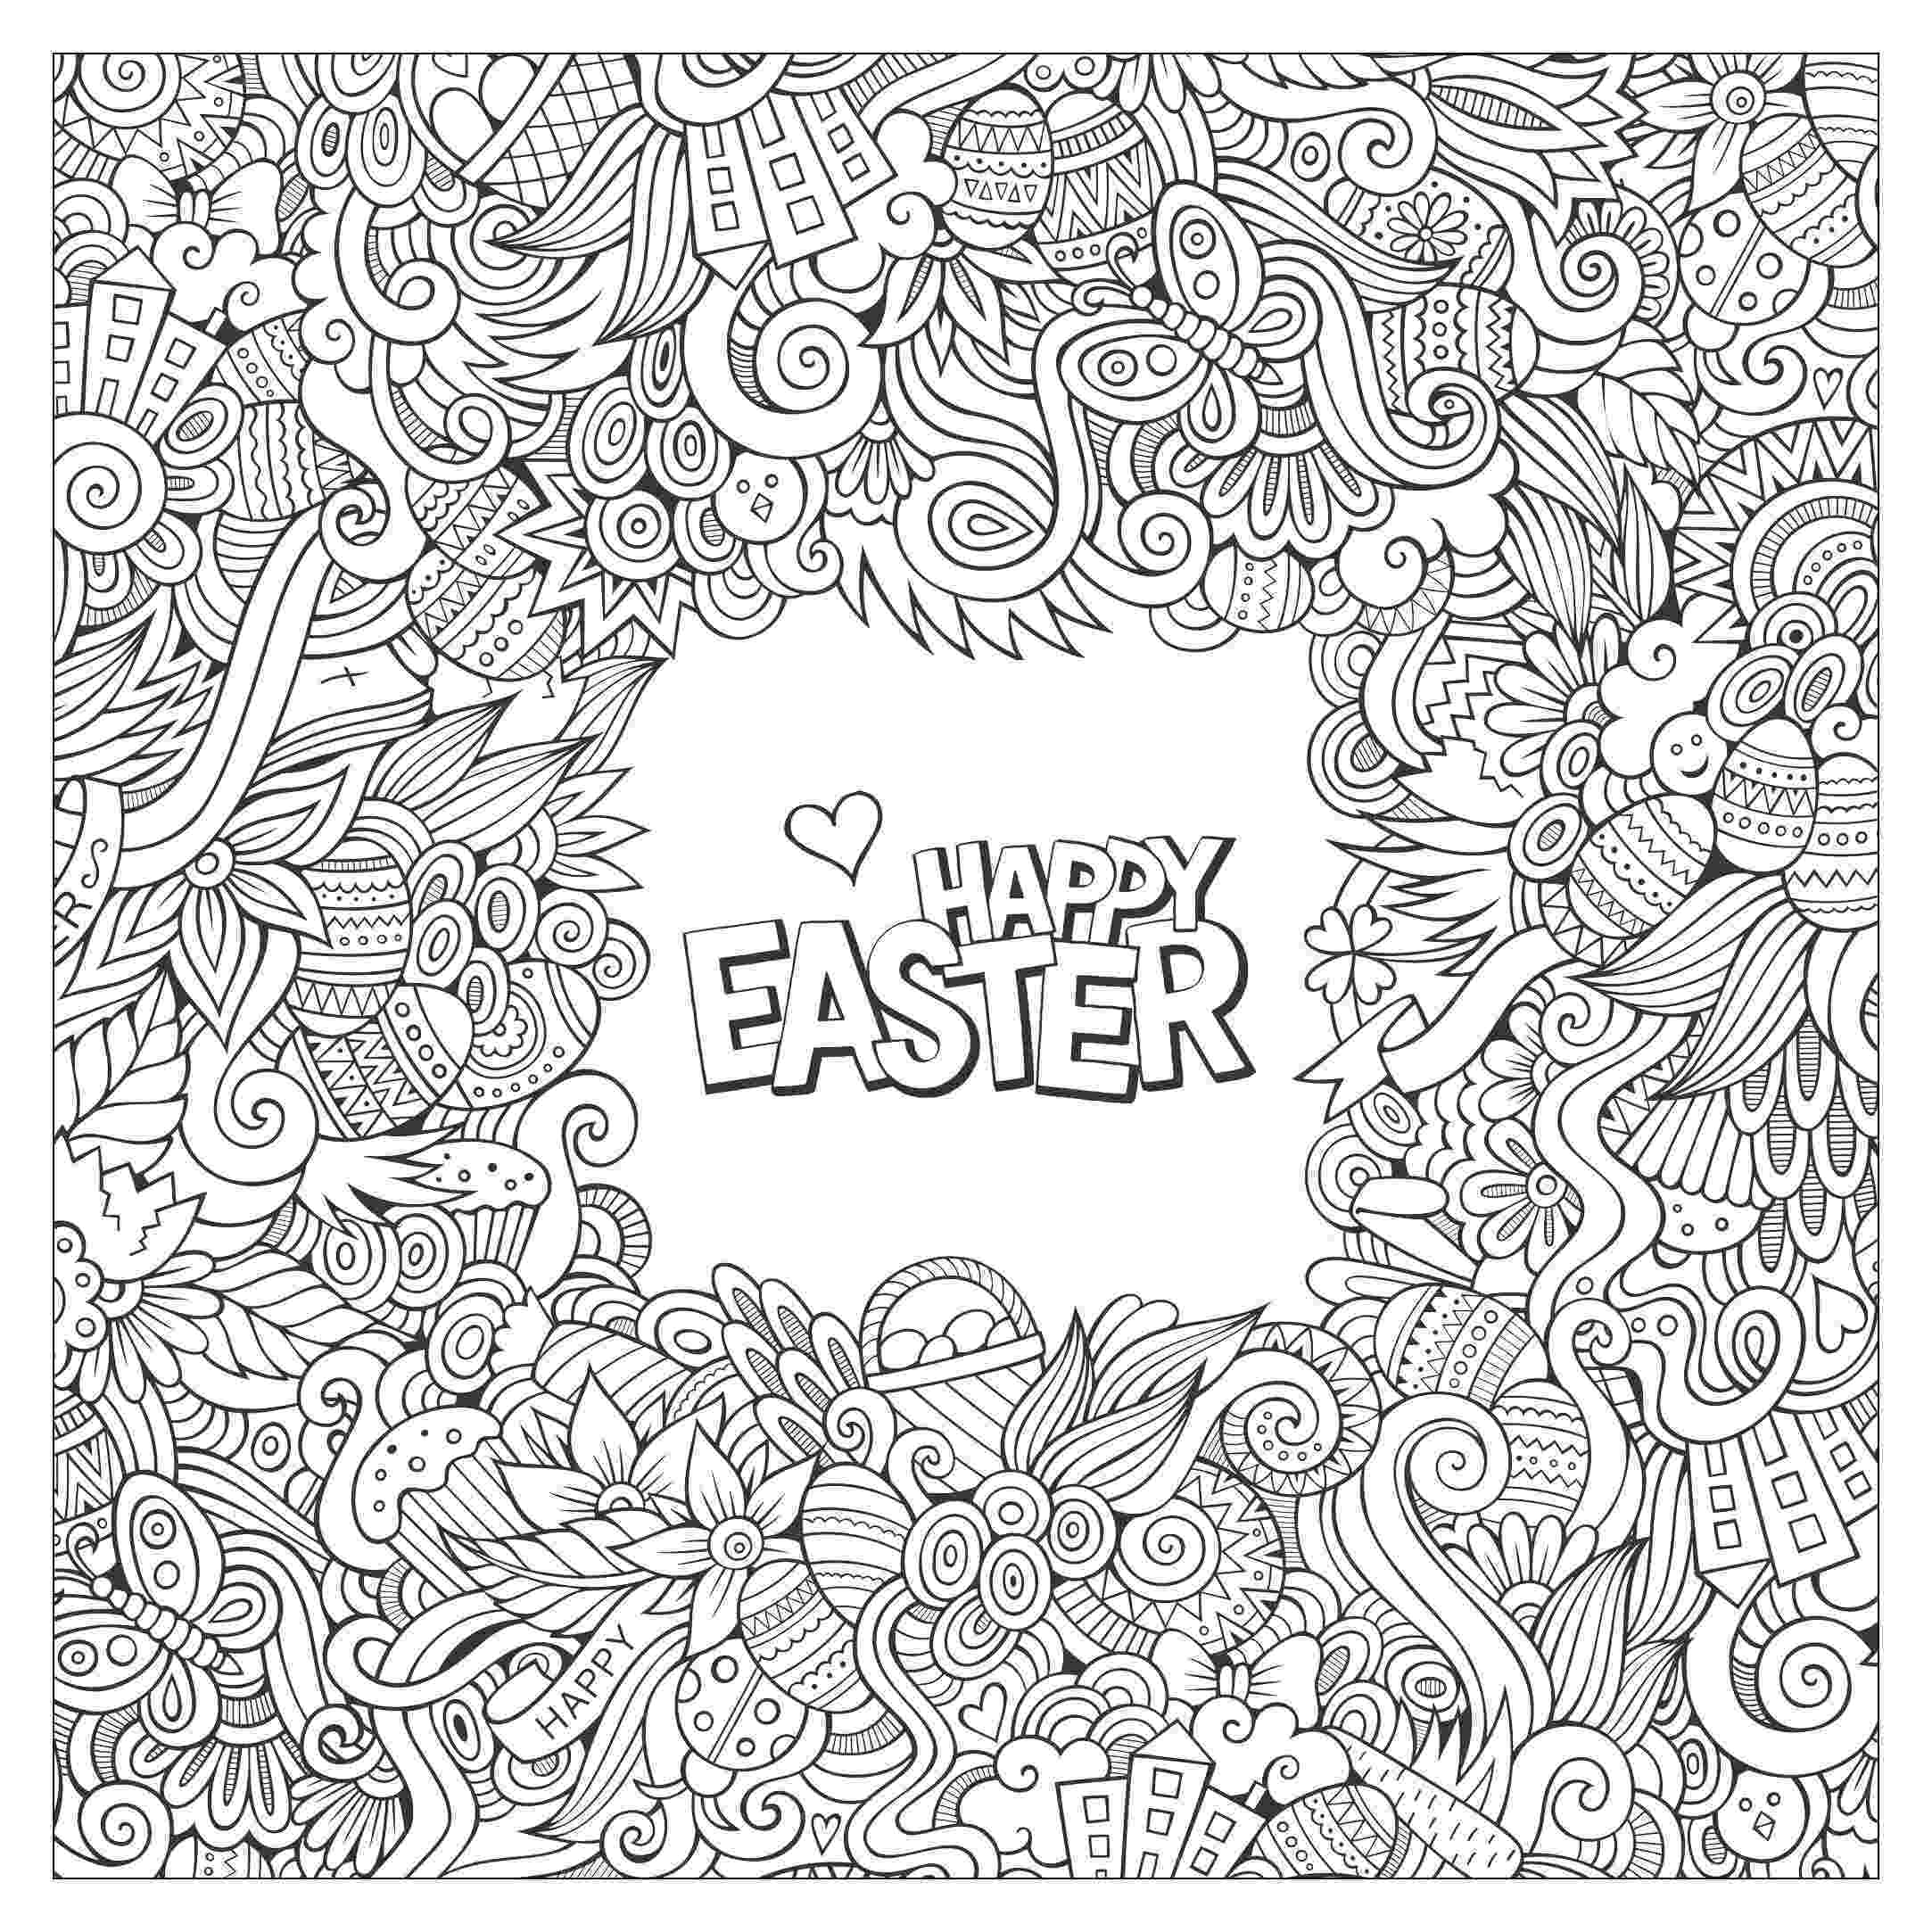 easter colouring pages printable for adults easter coloring pages for adults best coloring pages for colouring printable pages easter adults for